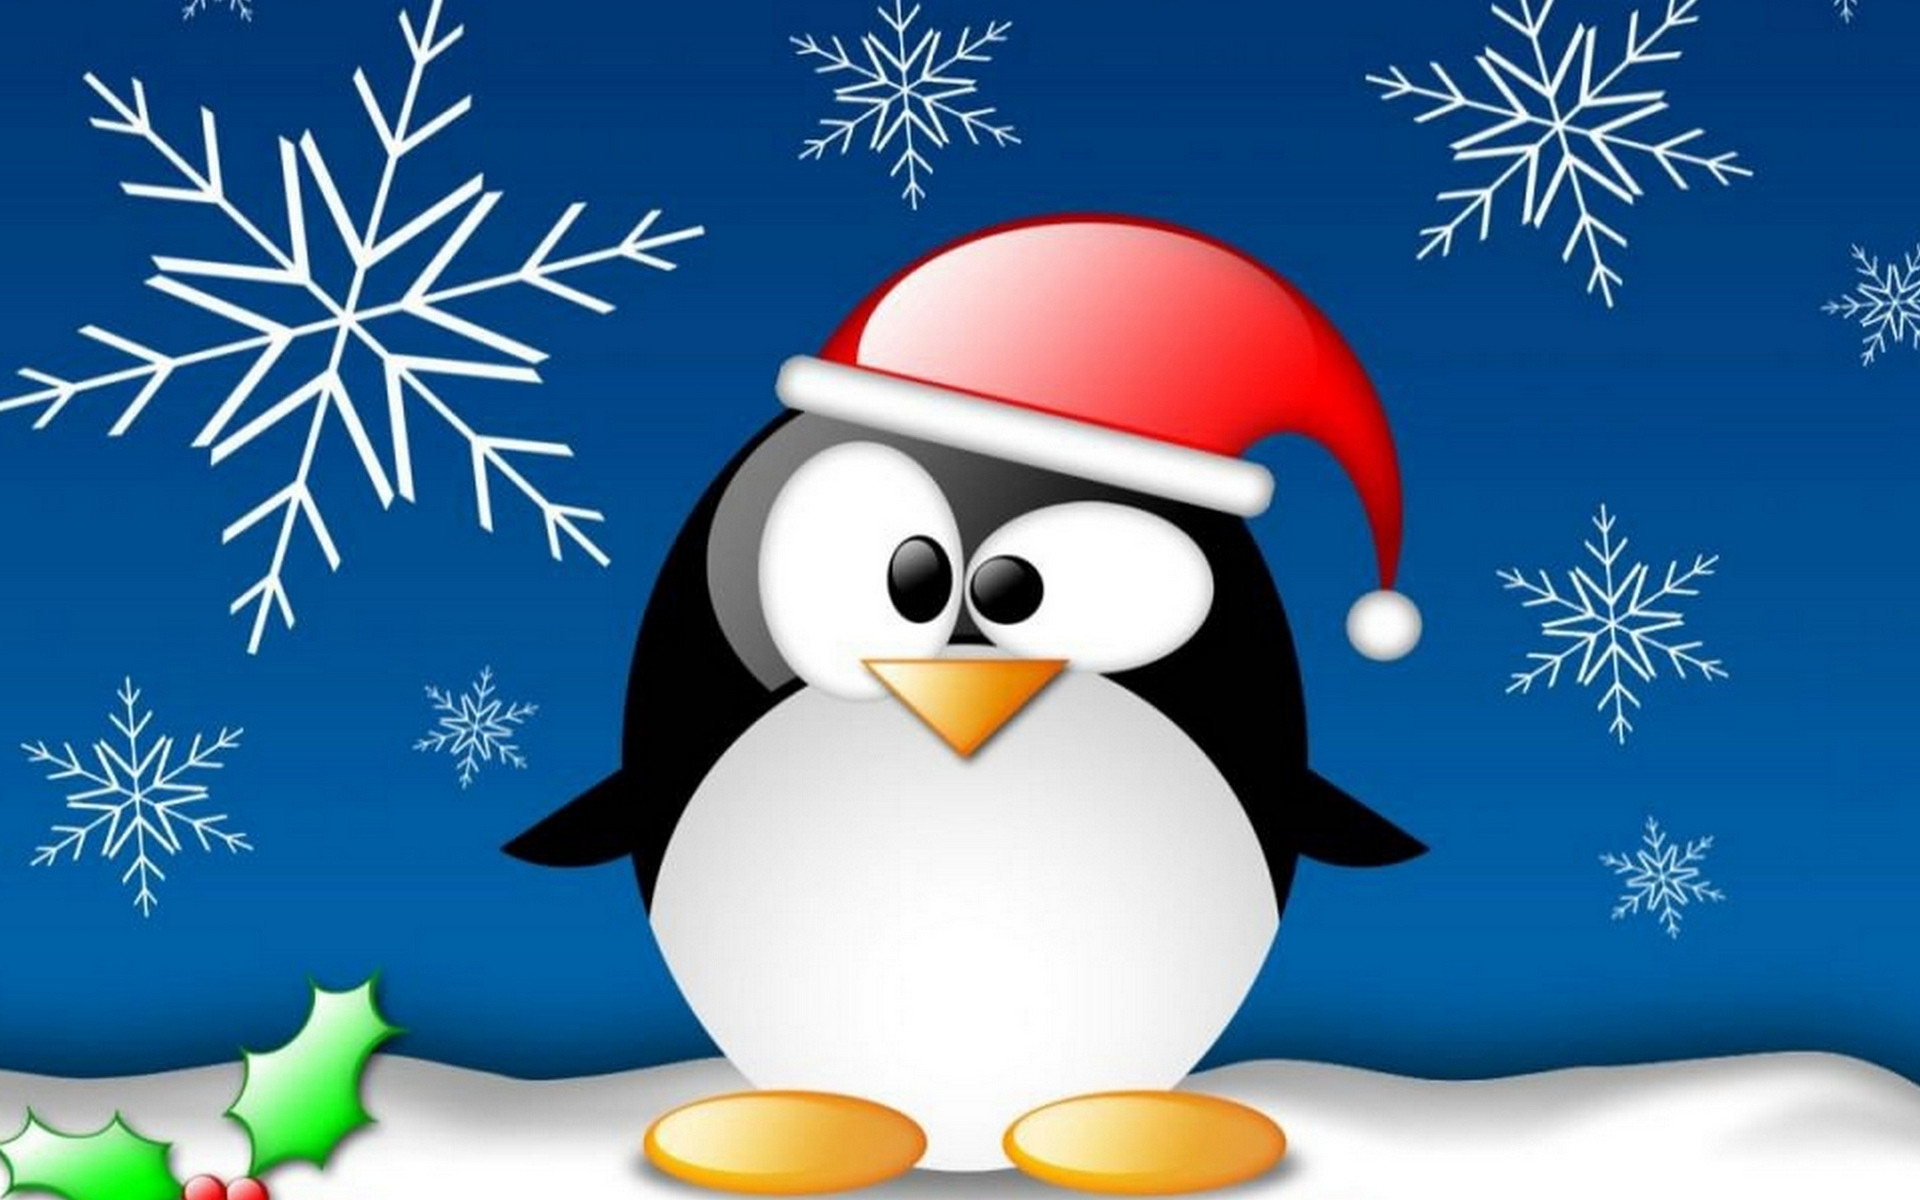 title funny christmas wallpaper 62 images dimension 1920 x 1200 file type jpgjpeg - Funny Christmas Wallpaper